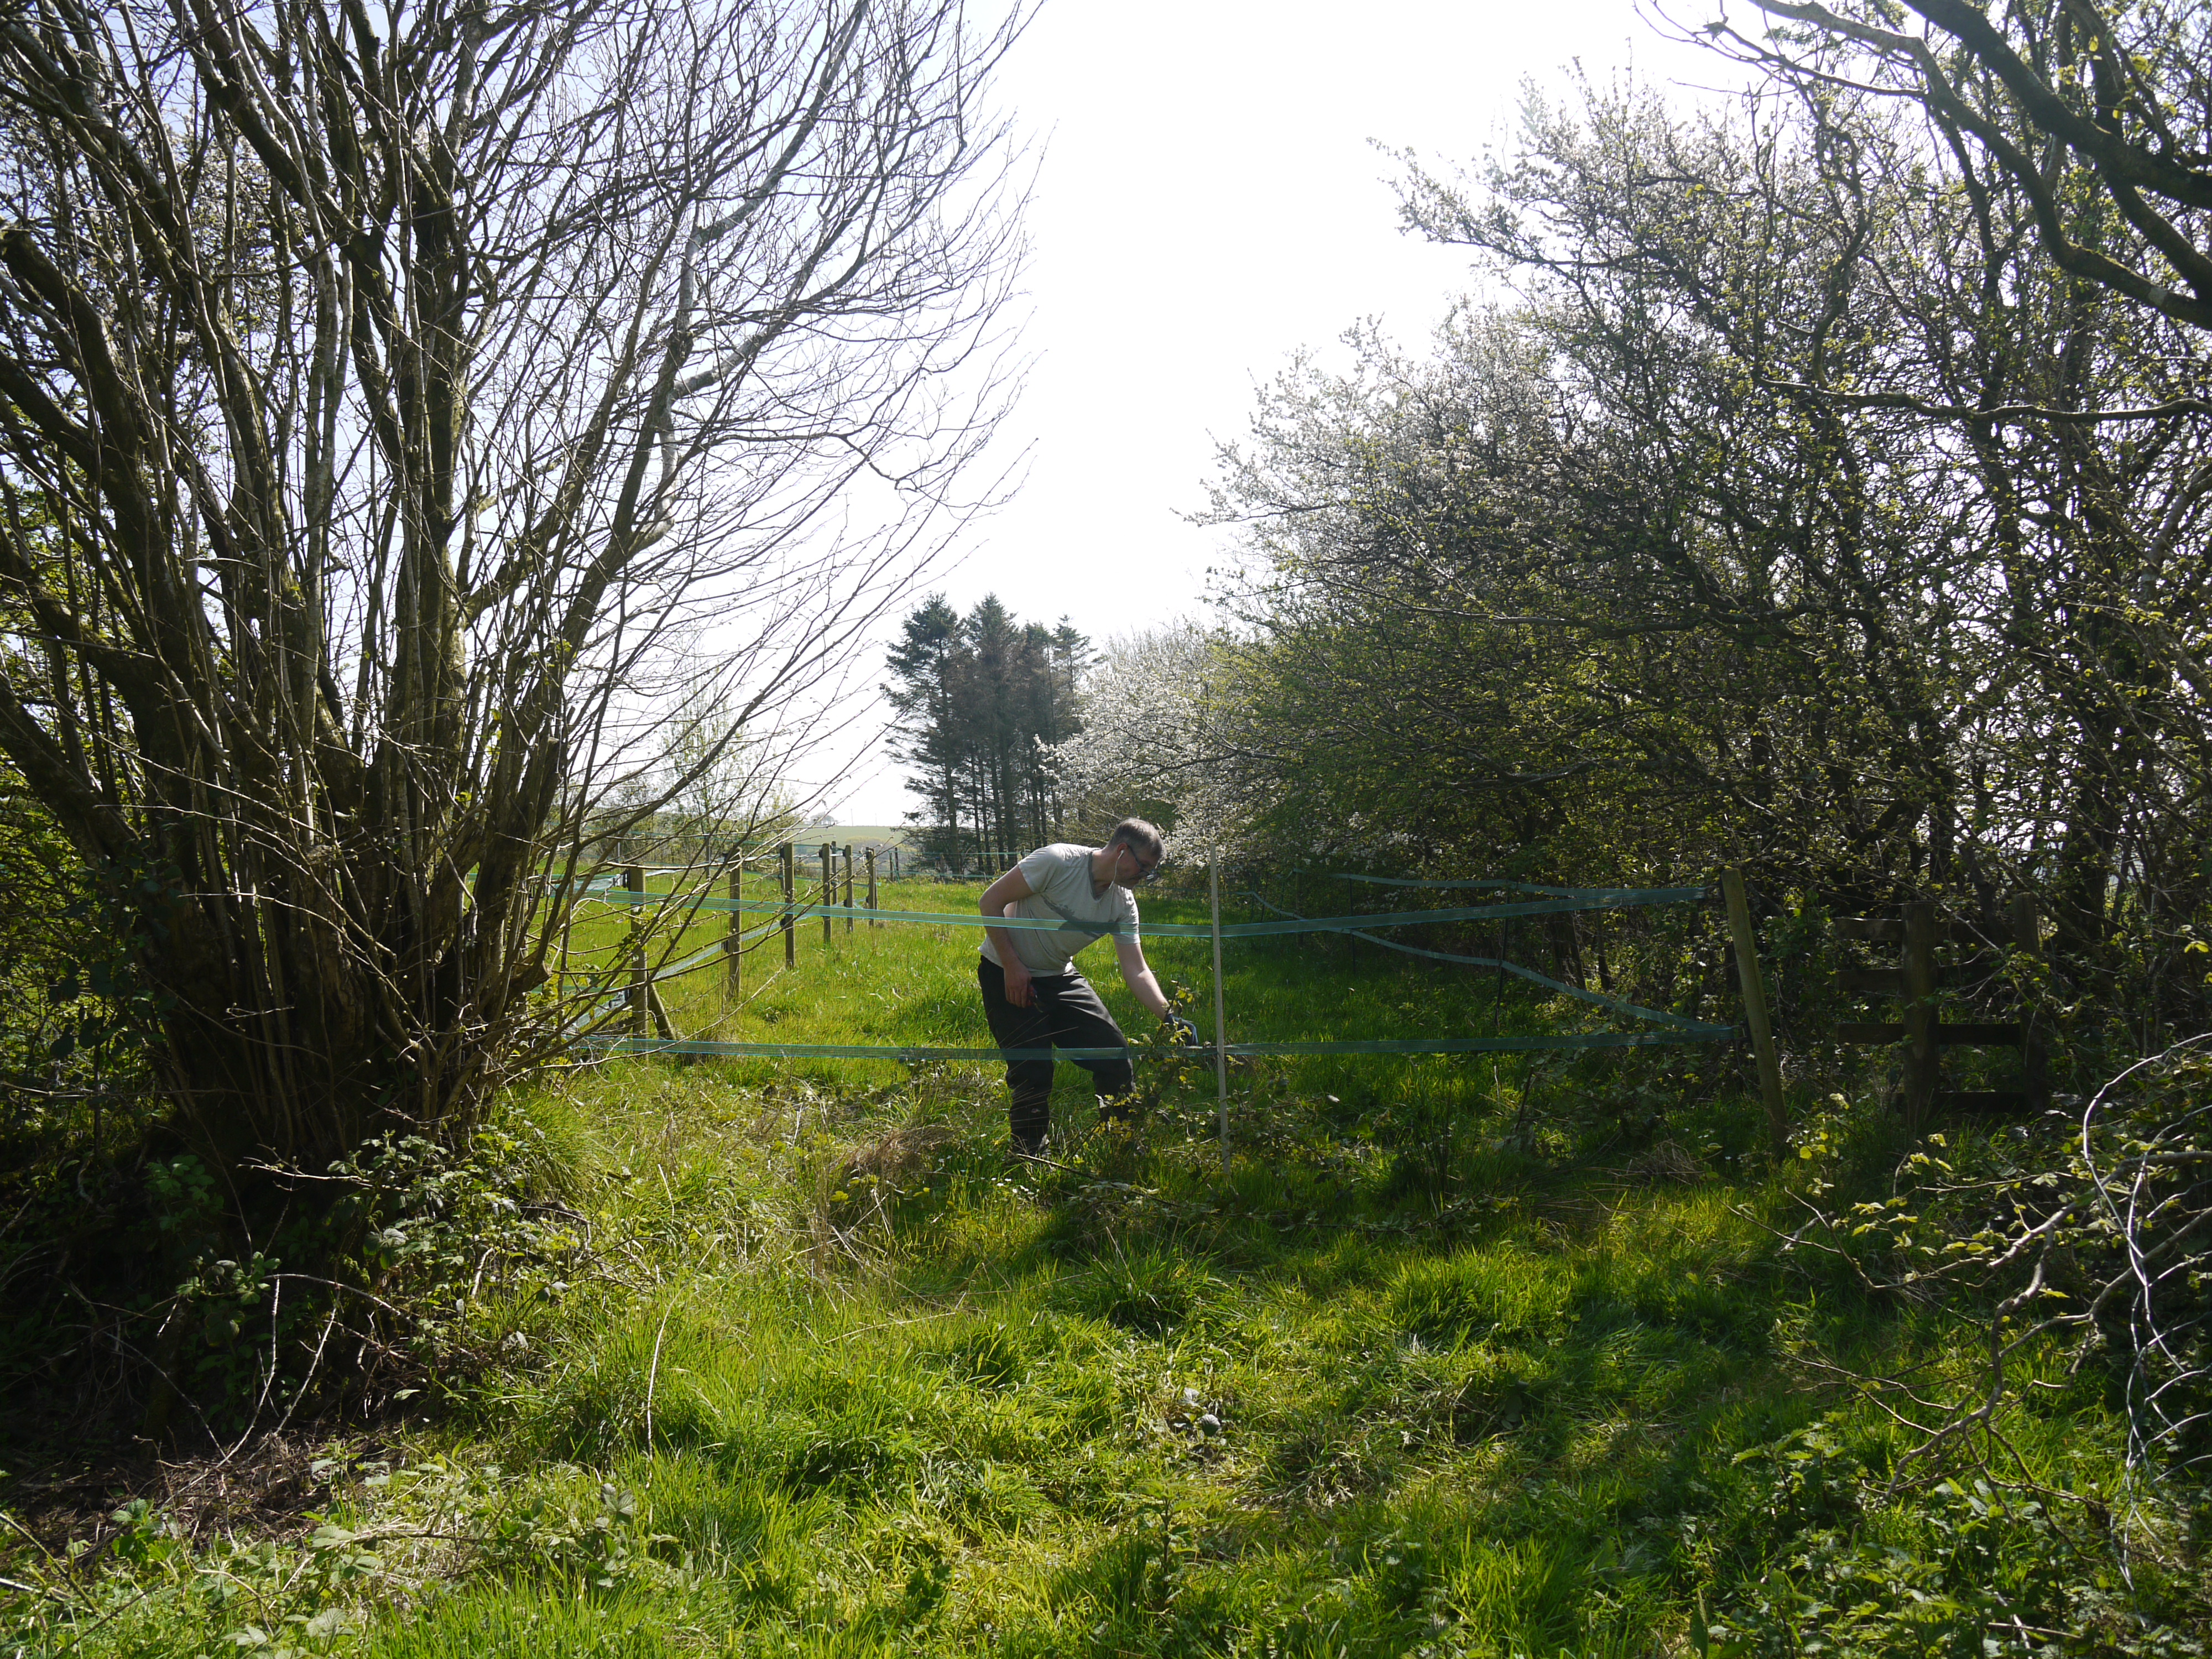 Maintaining the wildlife walk